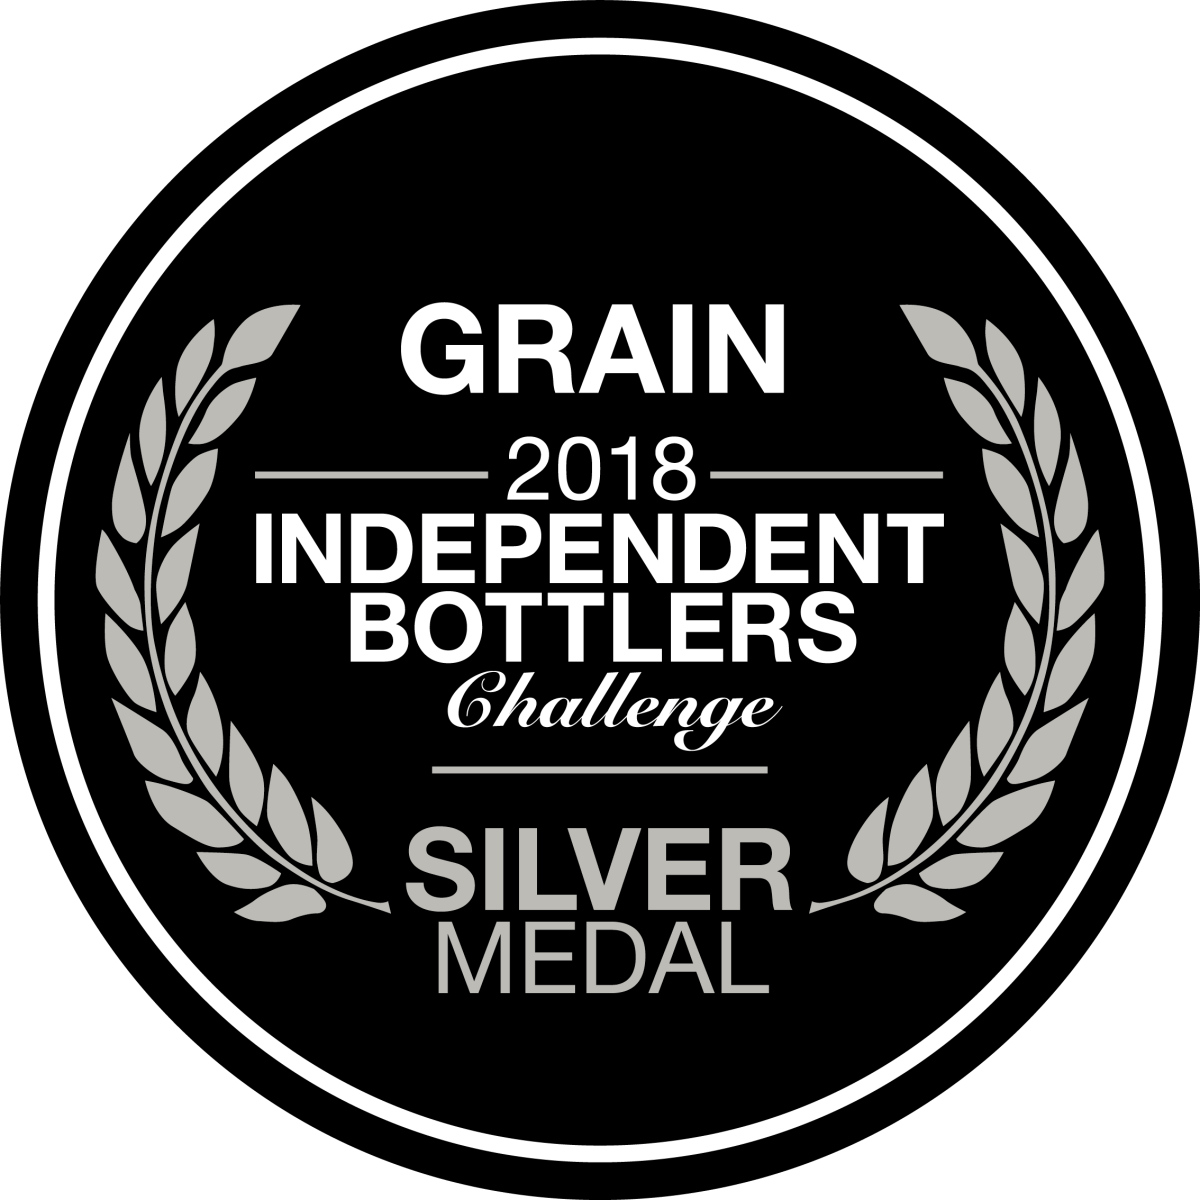 Independent Bottlers Challenge Silver Medal Winners